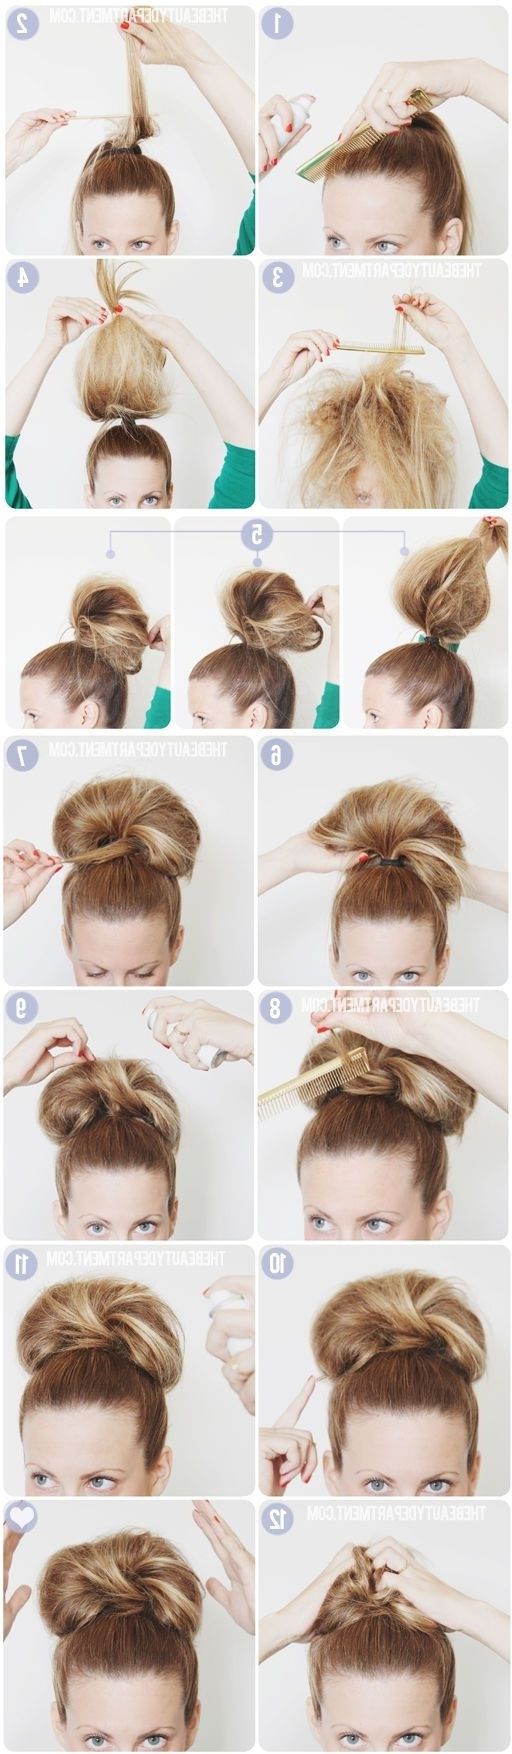 10 Super Easy Updo Hairstyles Tutorials – Popular Haircuts Inside Widely Used Elegant High Bouffant Bun Hairstyles (View 15 of 20)